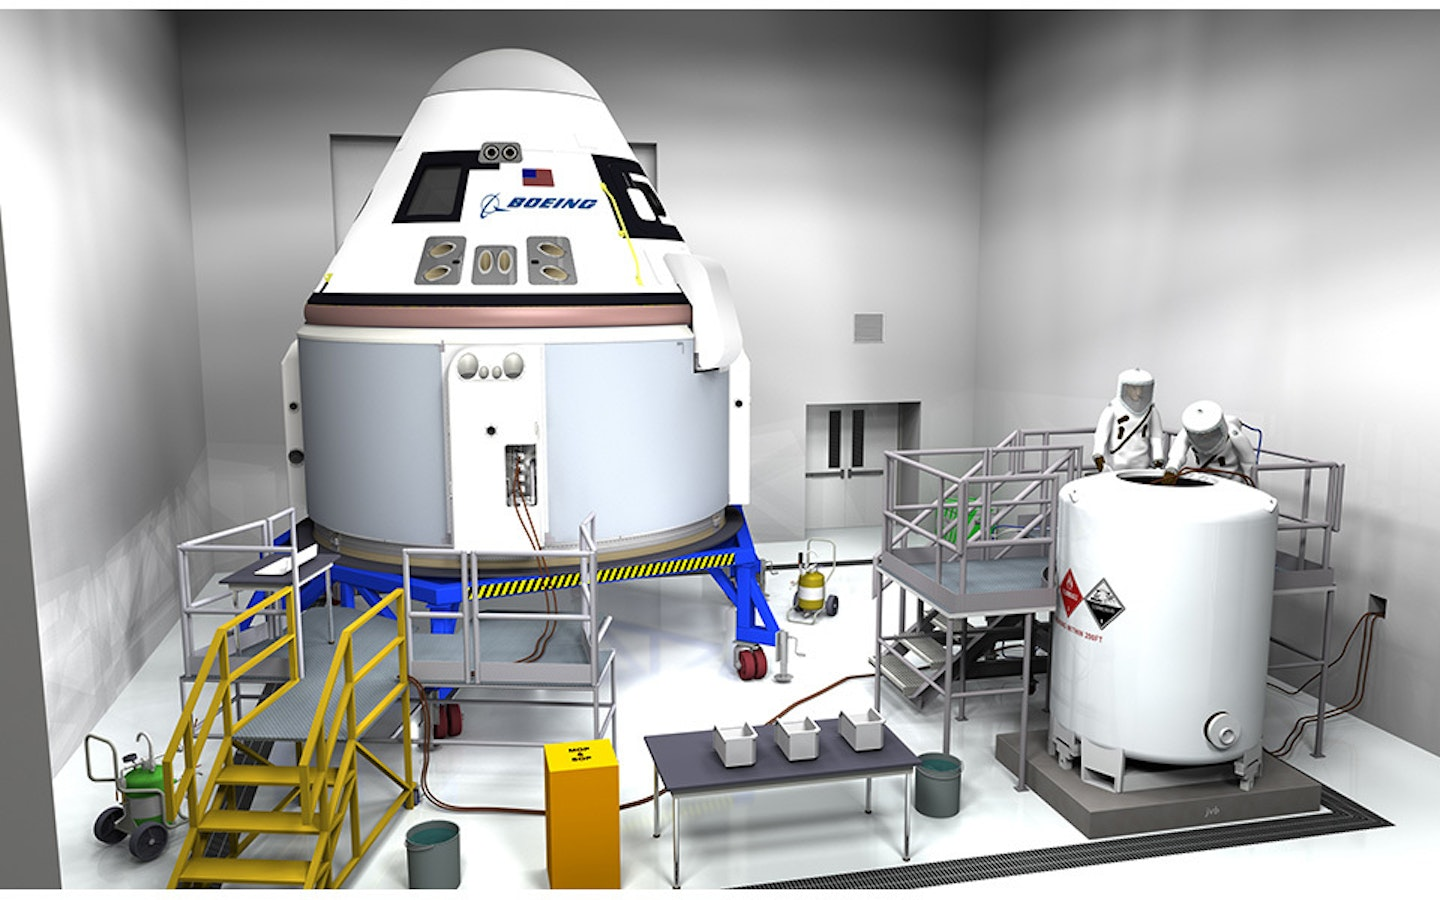 The Boeing CST-100 Starliner